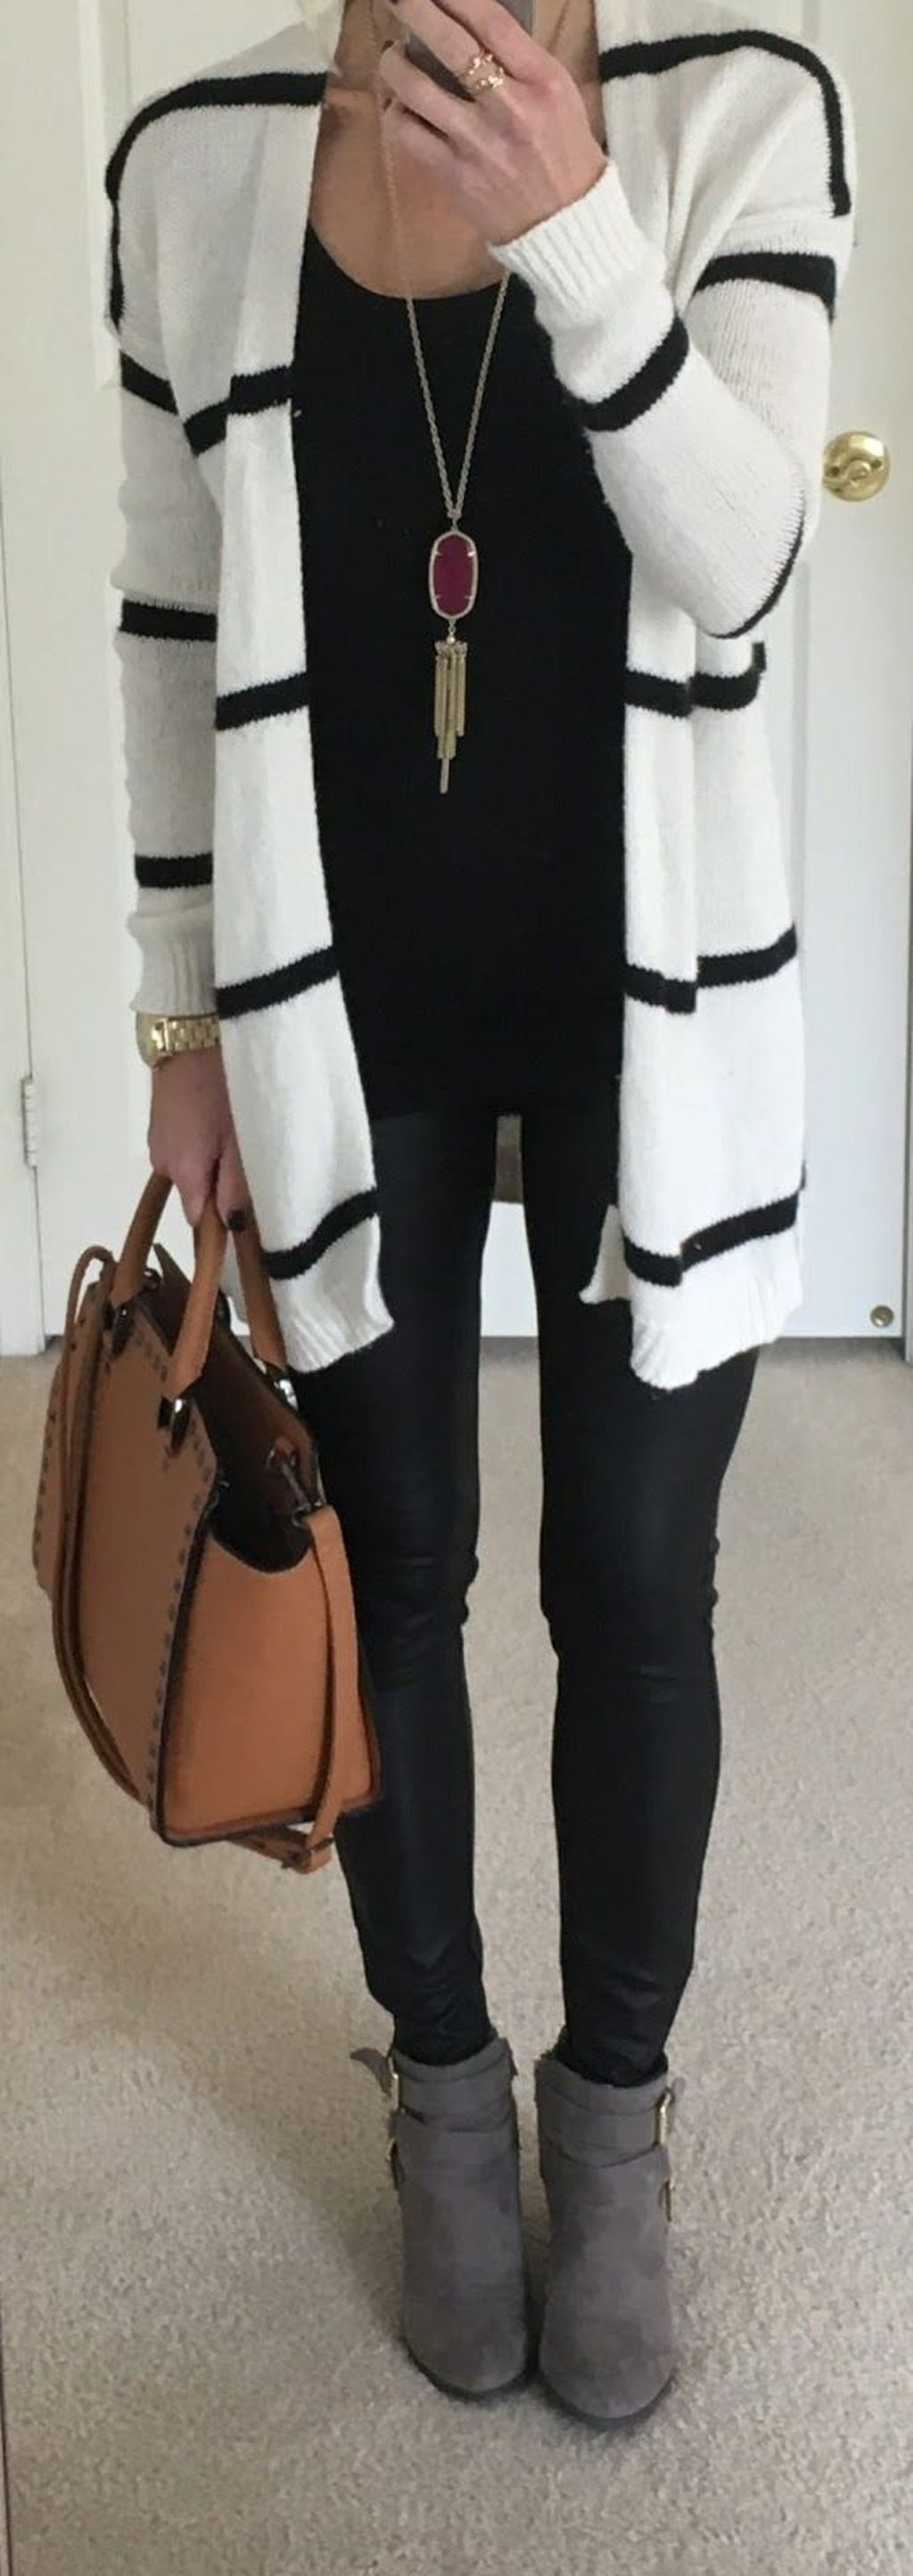 Casual winter outfits ideas with long cardigans casual winter